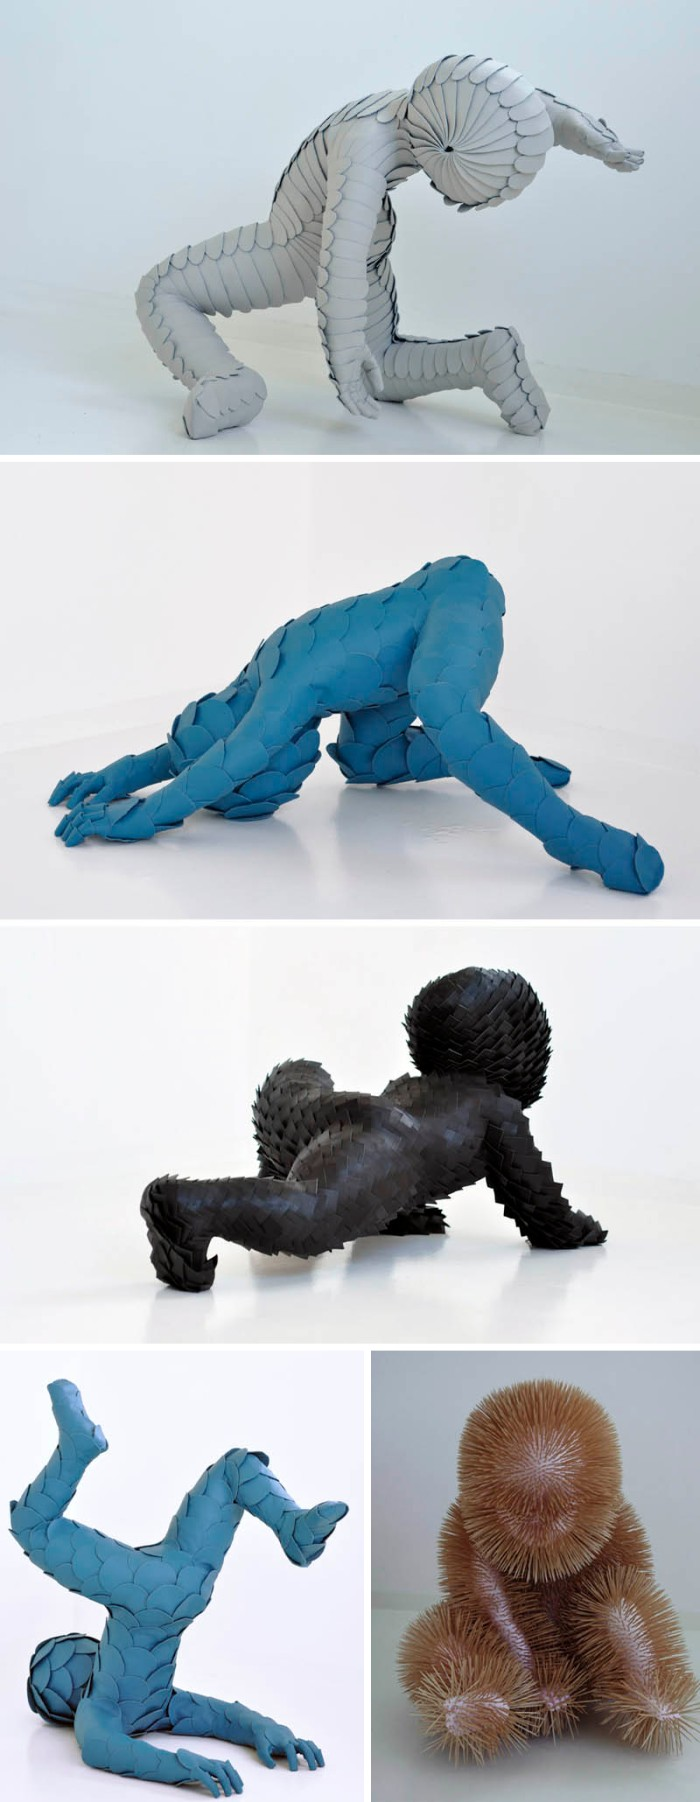 Sculptures with childlike characteristics yet animal-looking, made with leather, synthetic materials andtoothpicks